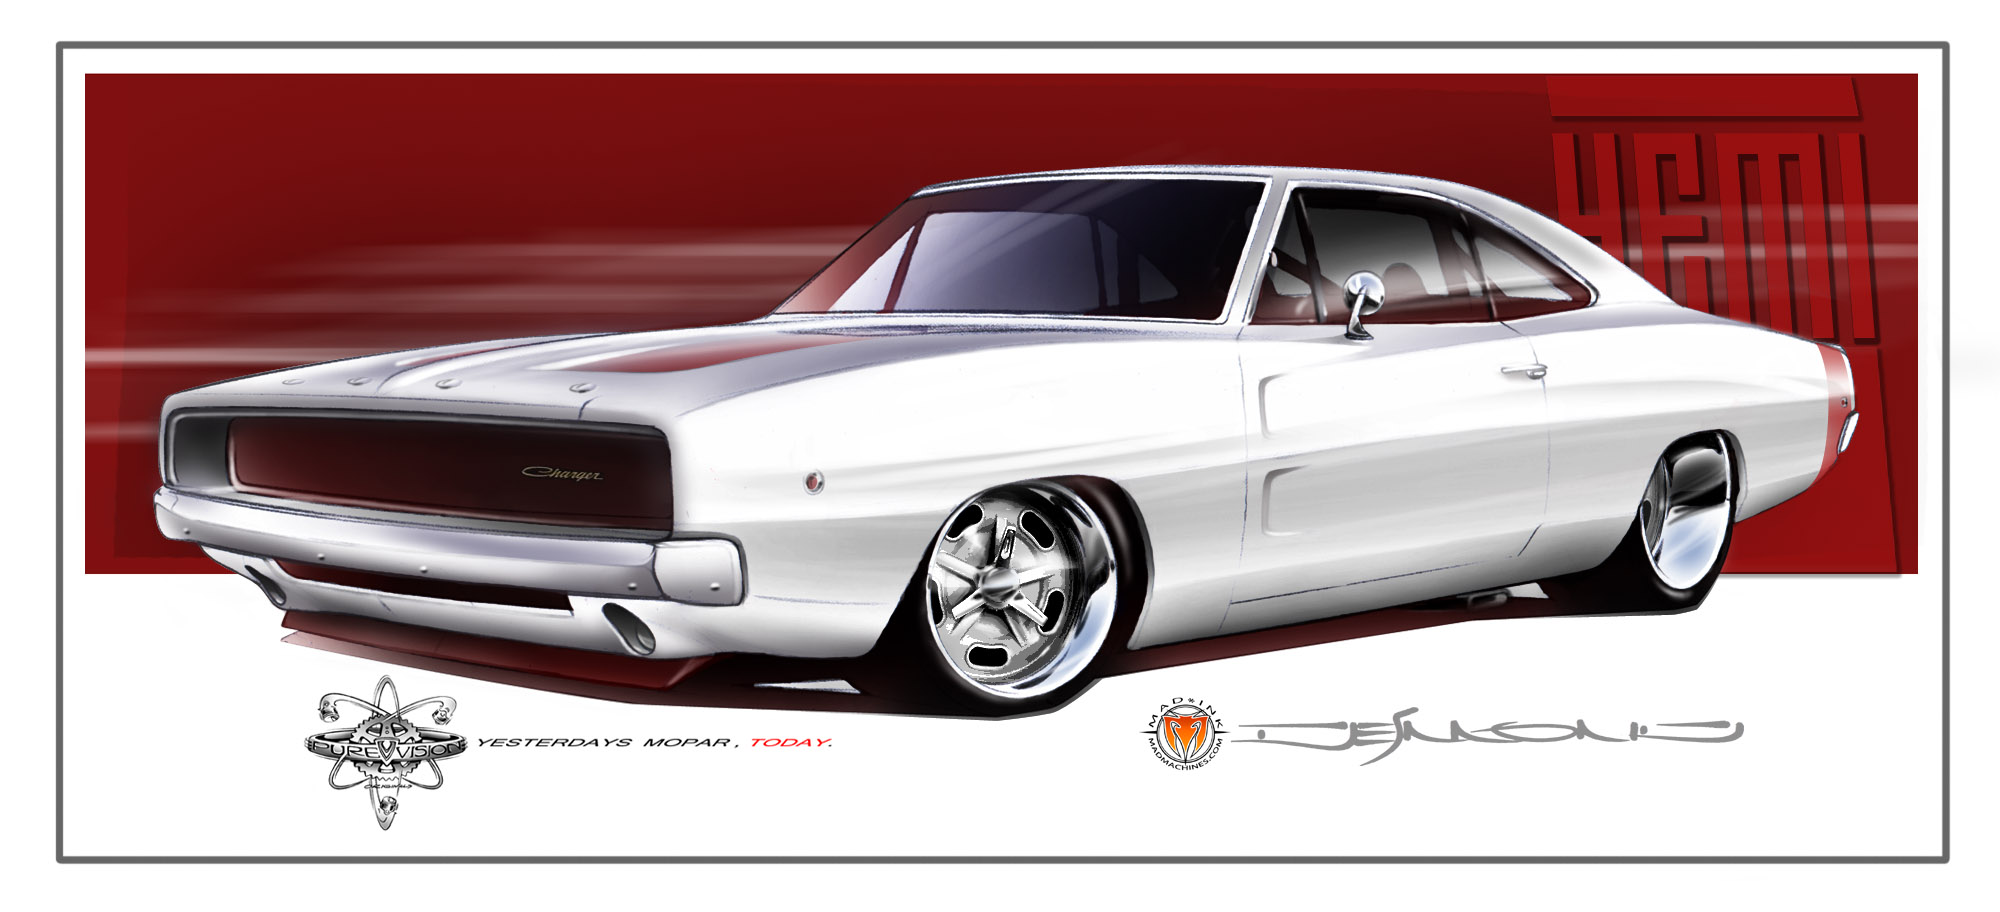 1968 charger wallpaper